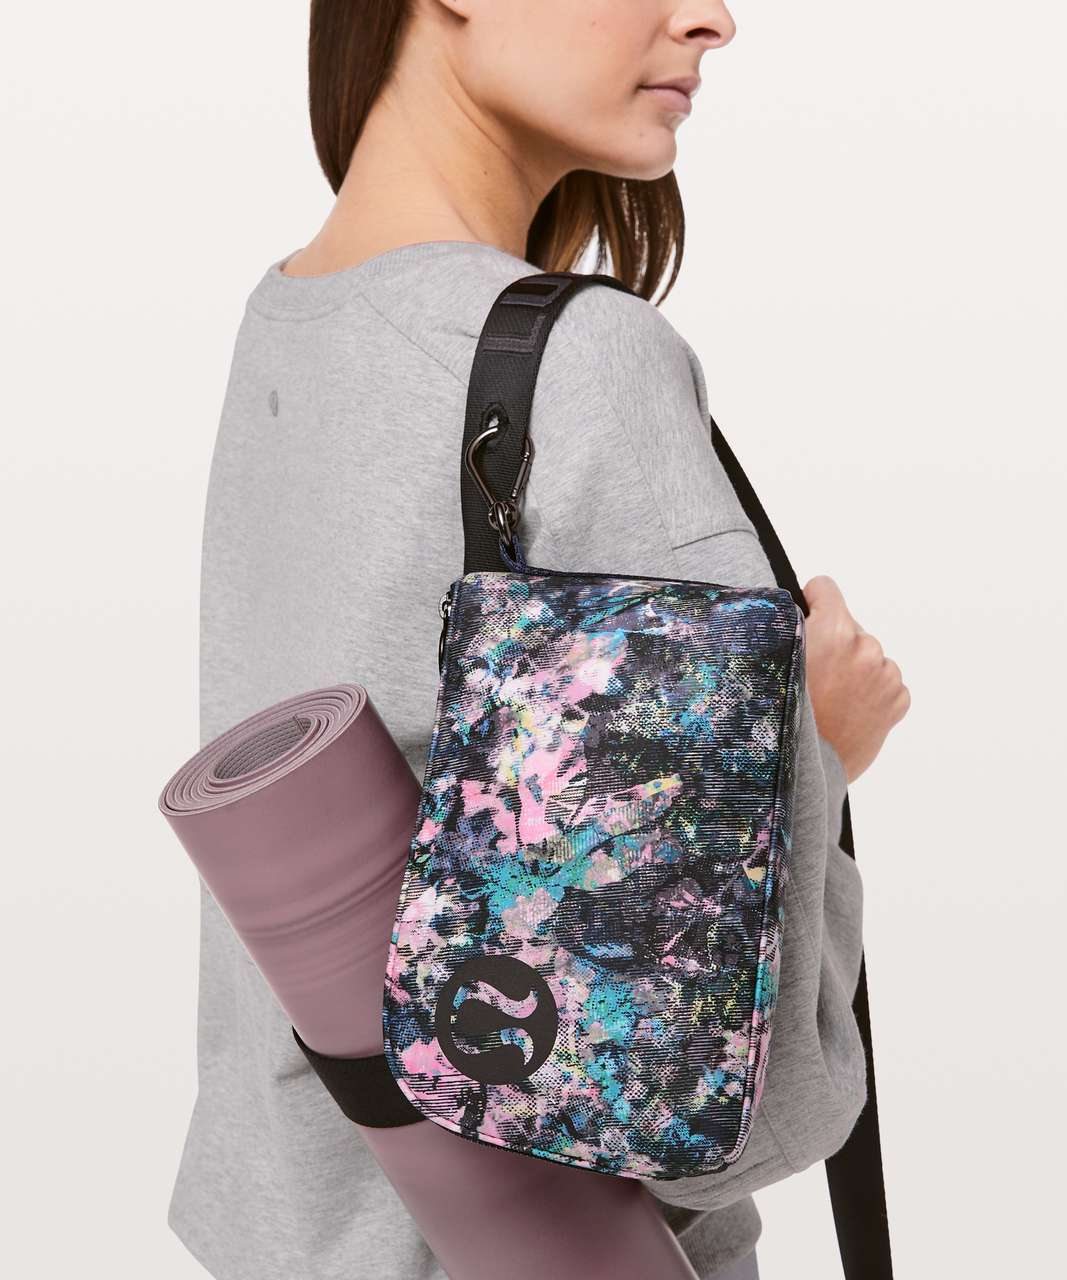 Lululemon Off The Mat Pouch *Neoprene - Dappled Daze Multi